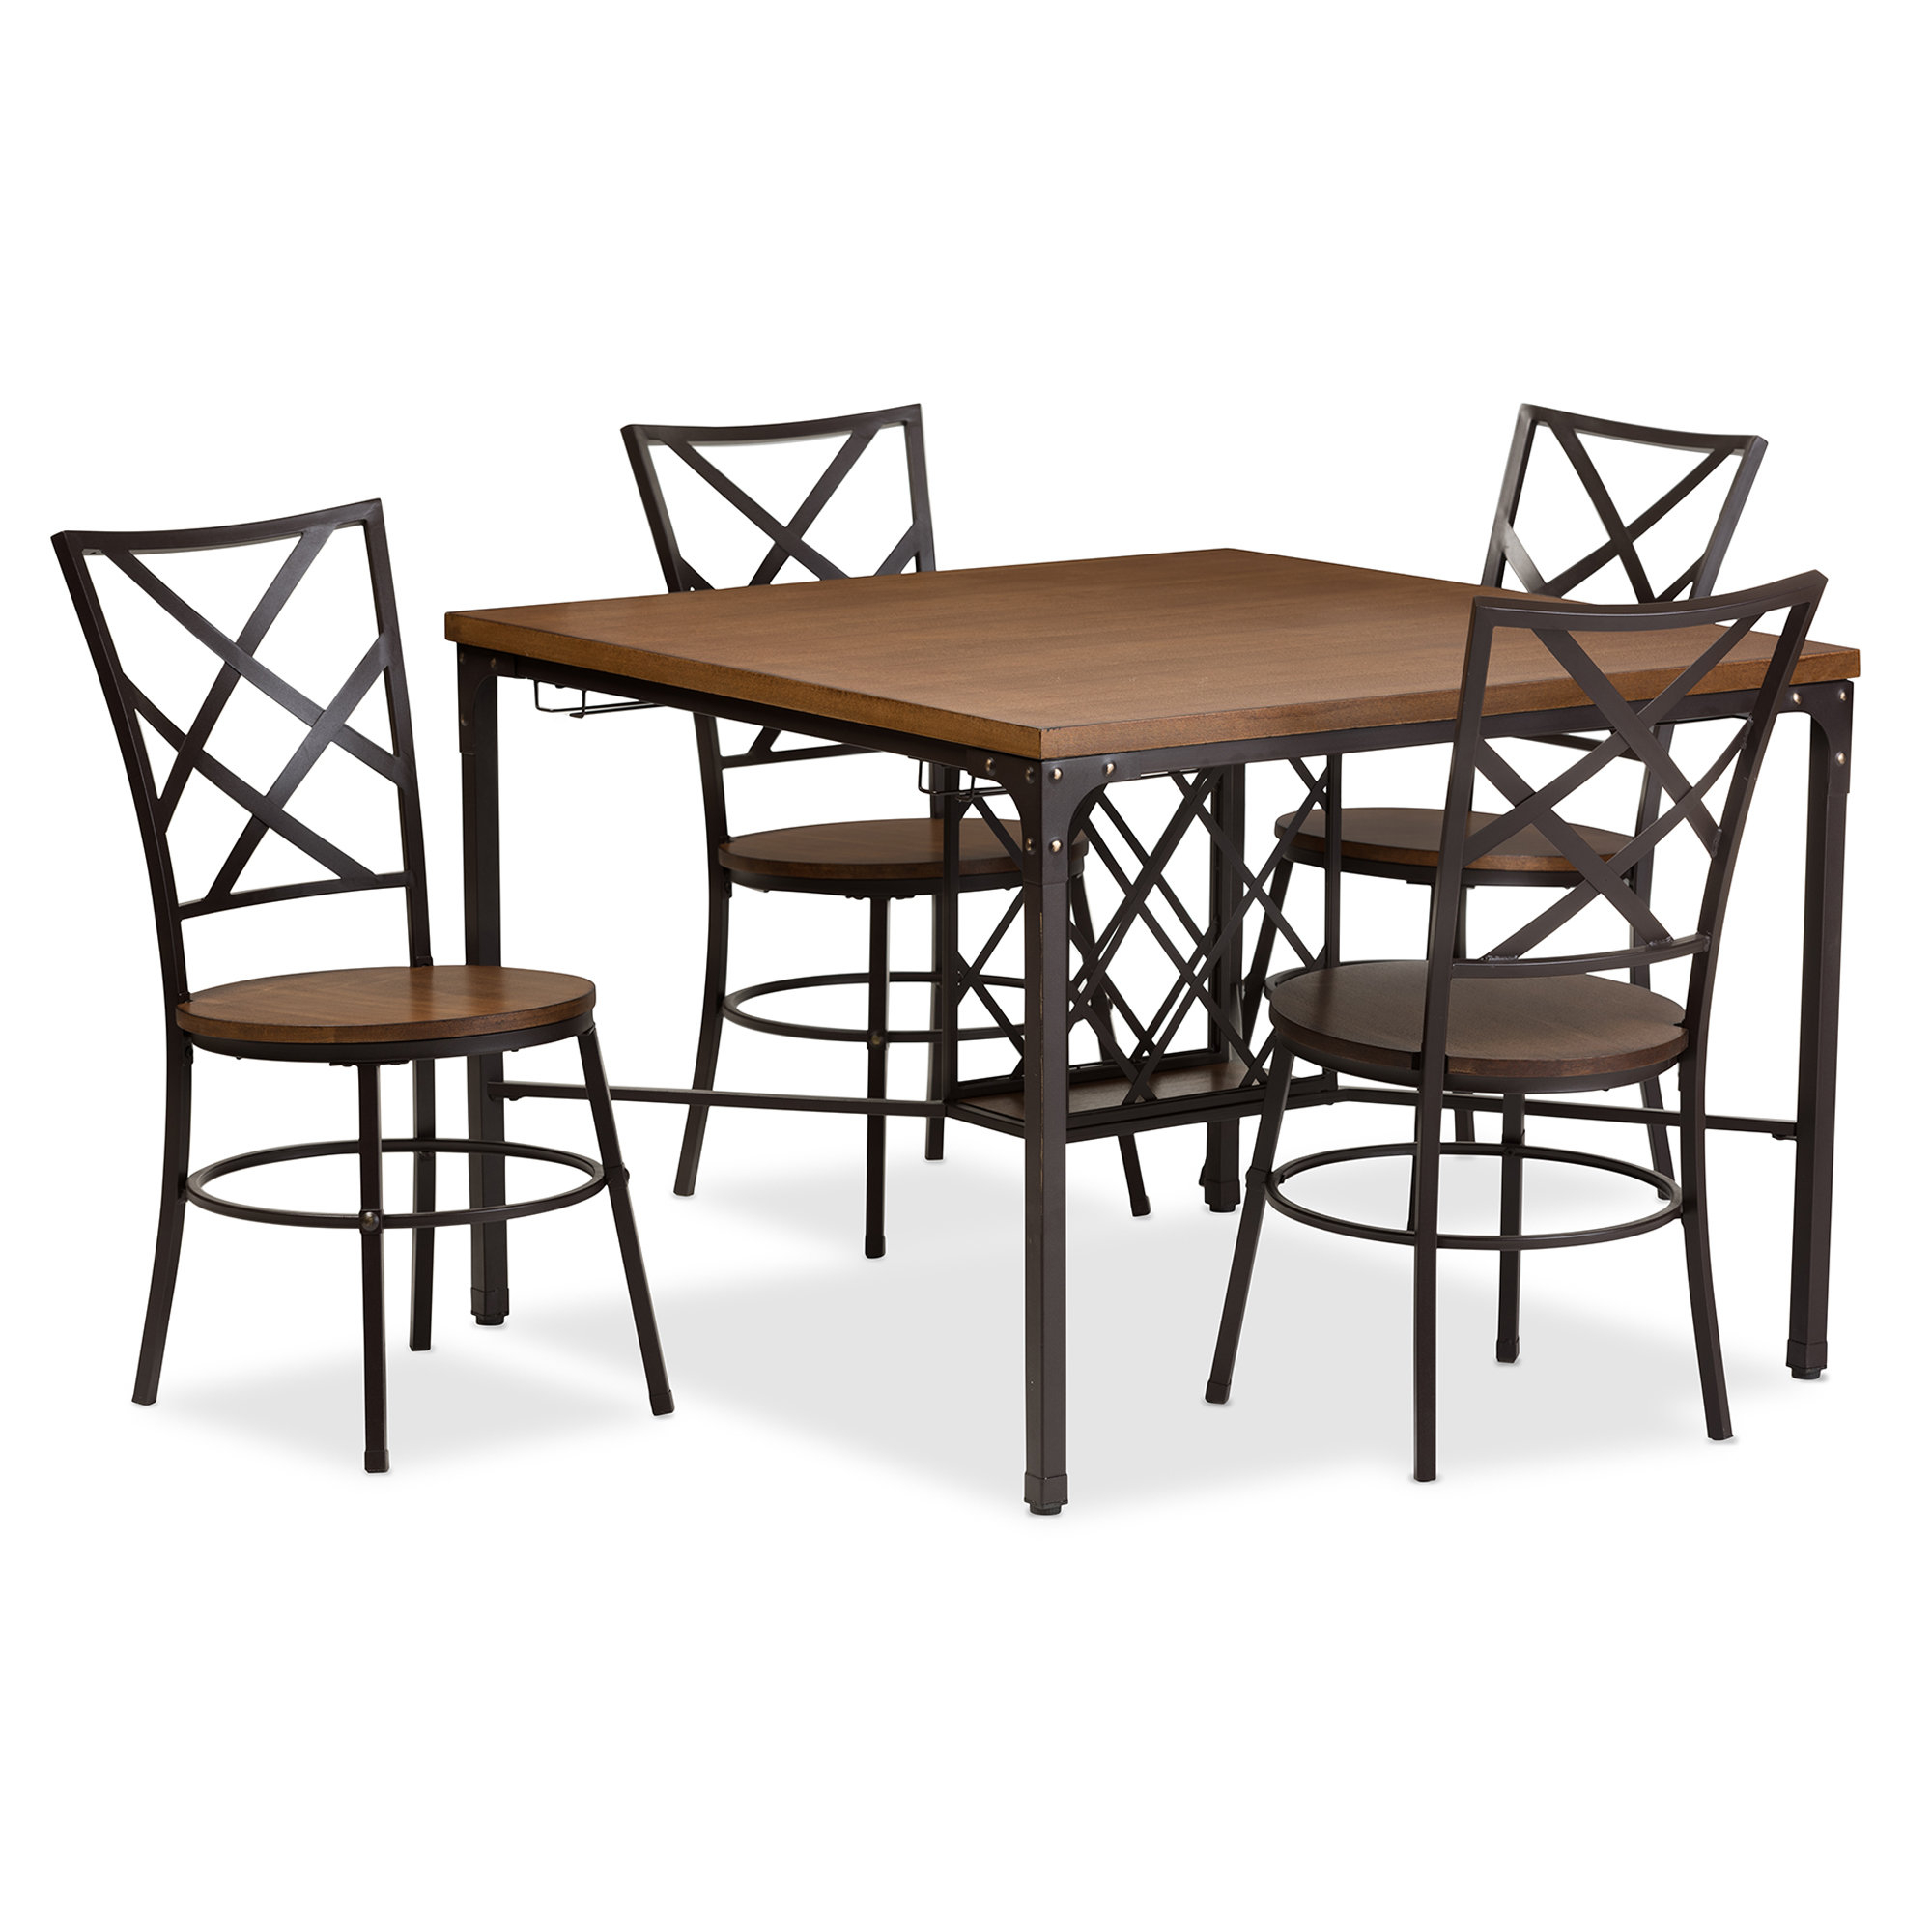 Calla 5 Piece Dining Set Within Most Recently Released Casiano 5 Piece Dining Sets (Photo 2 of 20)